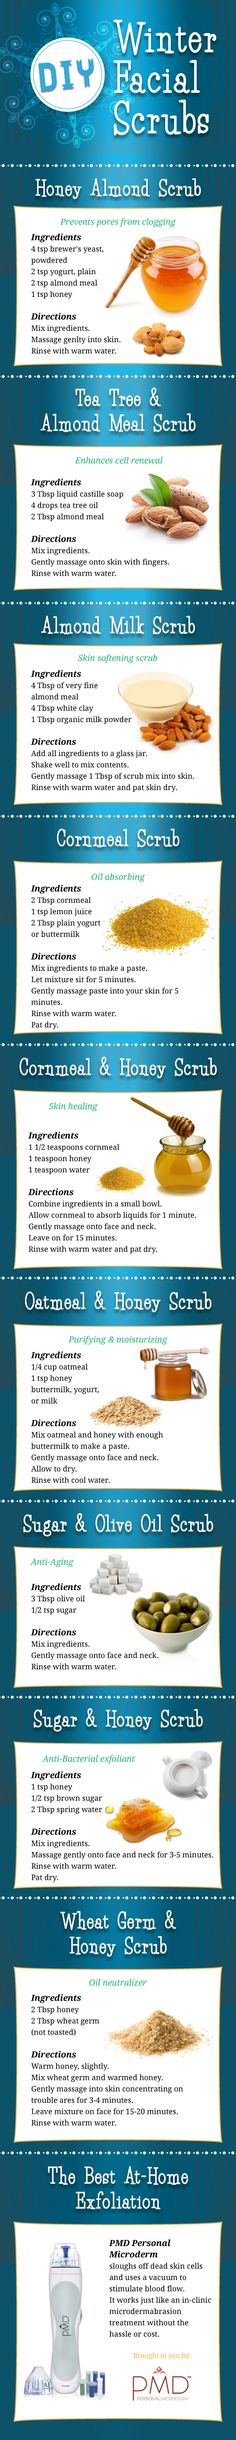 DIY Winter Facial Scrubs,Skin need a pick me up this winter? Try one of the DIY Winter Facial Scrubs on the info-graphic. Beauty Secrets, Beauty Hacks, Beauty Tutorials, Beauty Care, Hair Beauty, Beauty Myth, Diy Beauté, Facial Scrubs, Body Scrubs